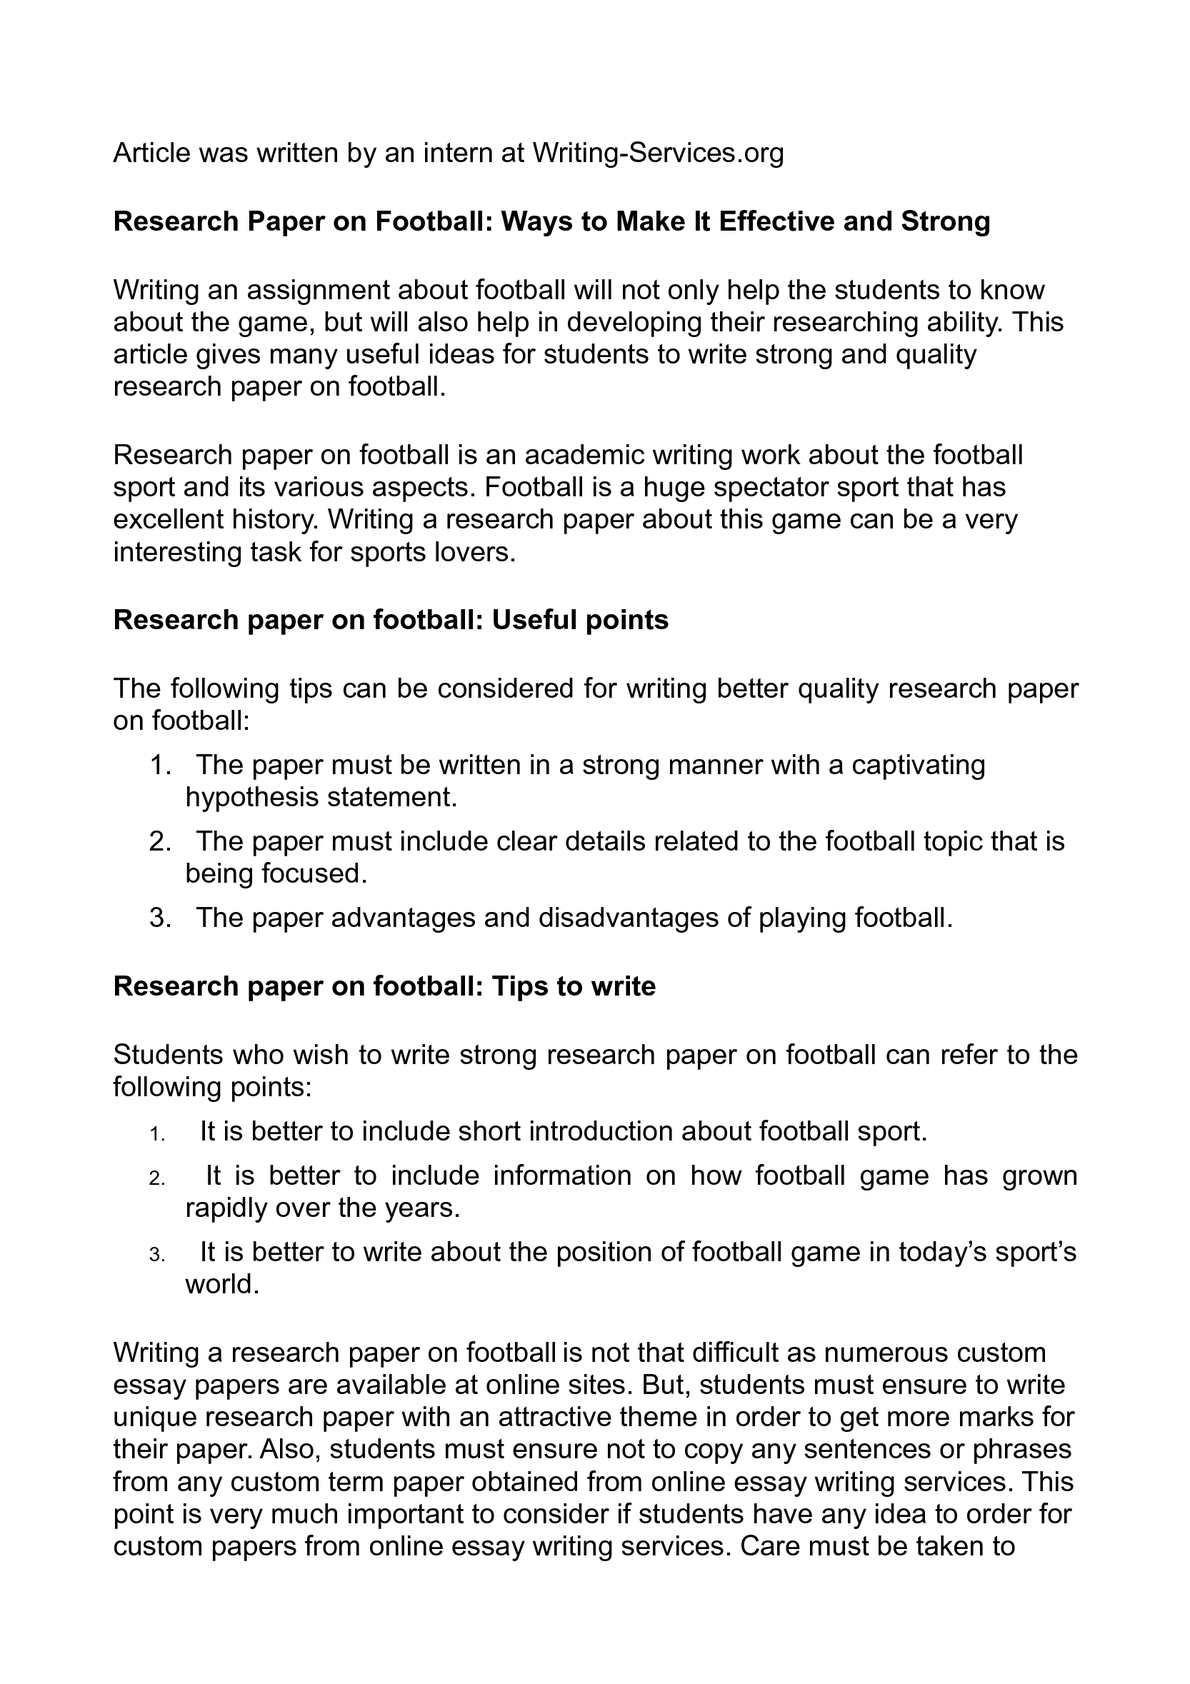 010 P1 Research Paper Good Sports Topics For Magnificent Papers Full